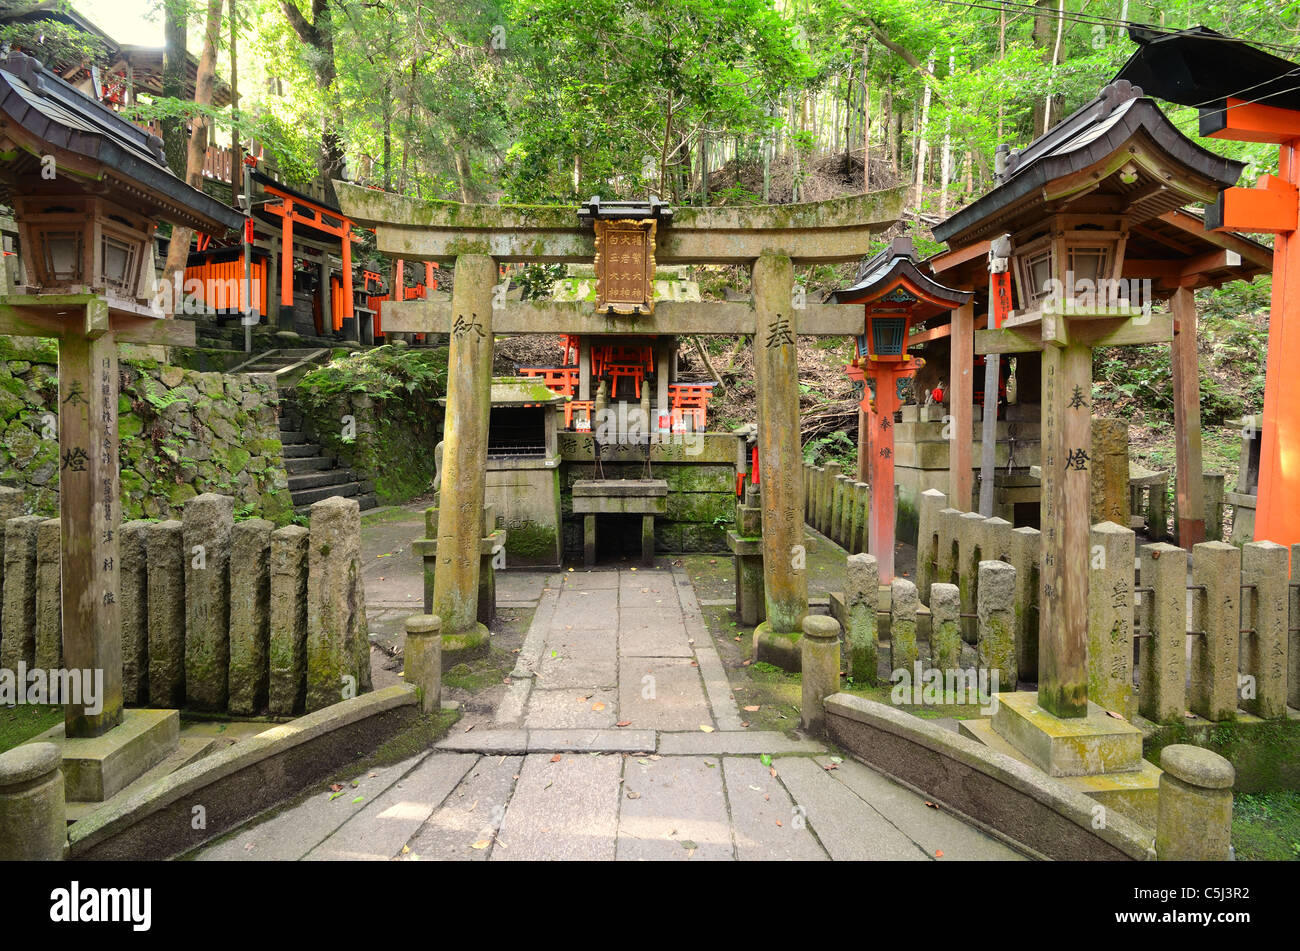 Small sub-shrine at Fushimi Inari Shrine in Kyoto, Japan. - Stock Image